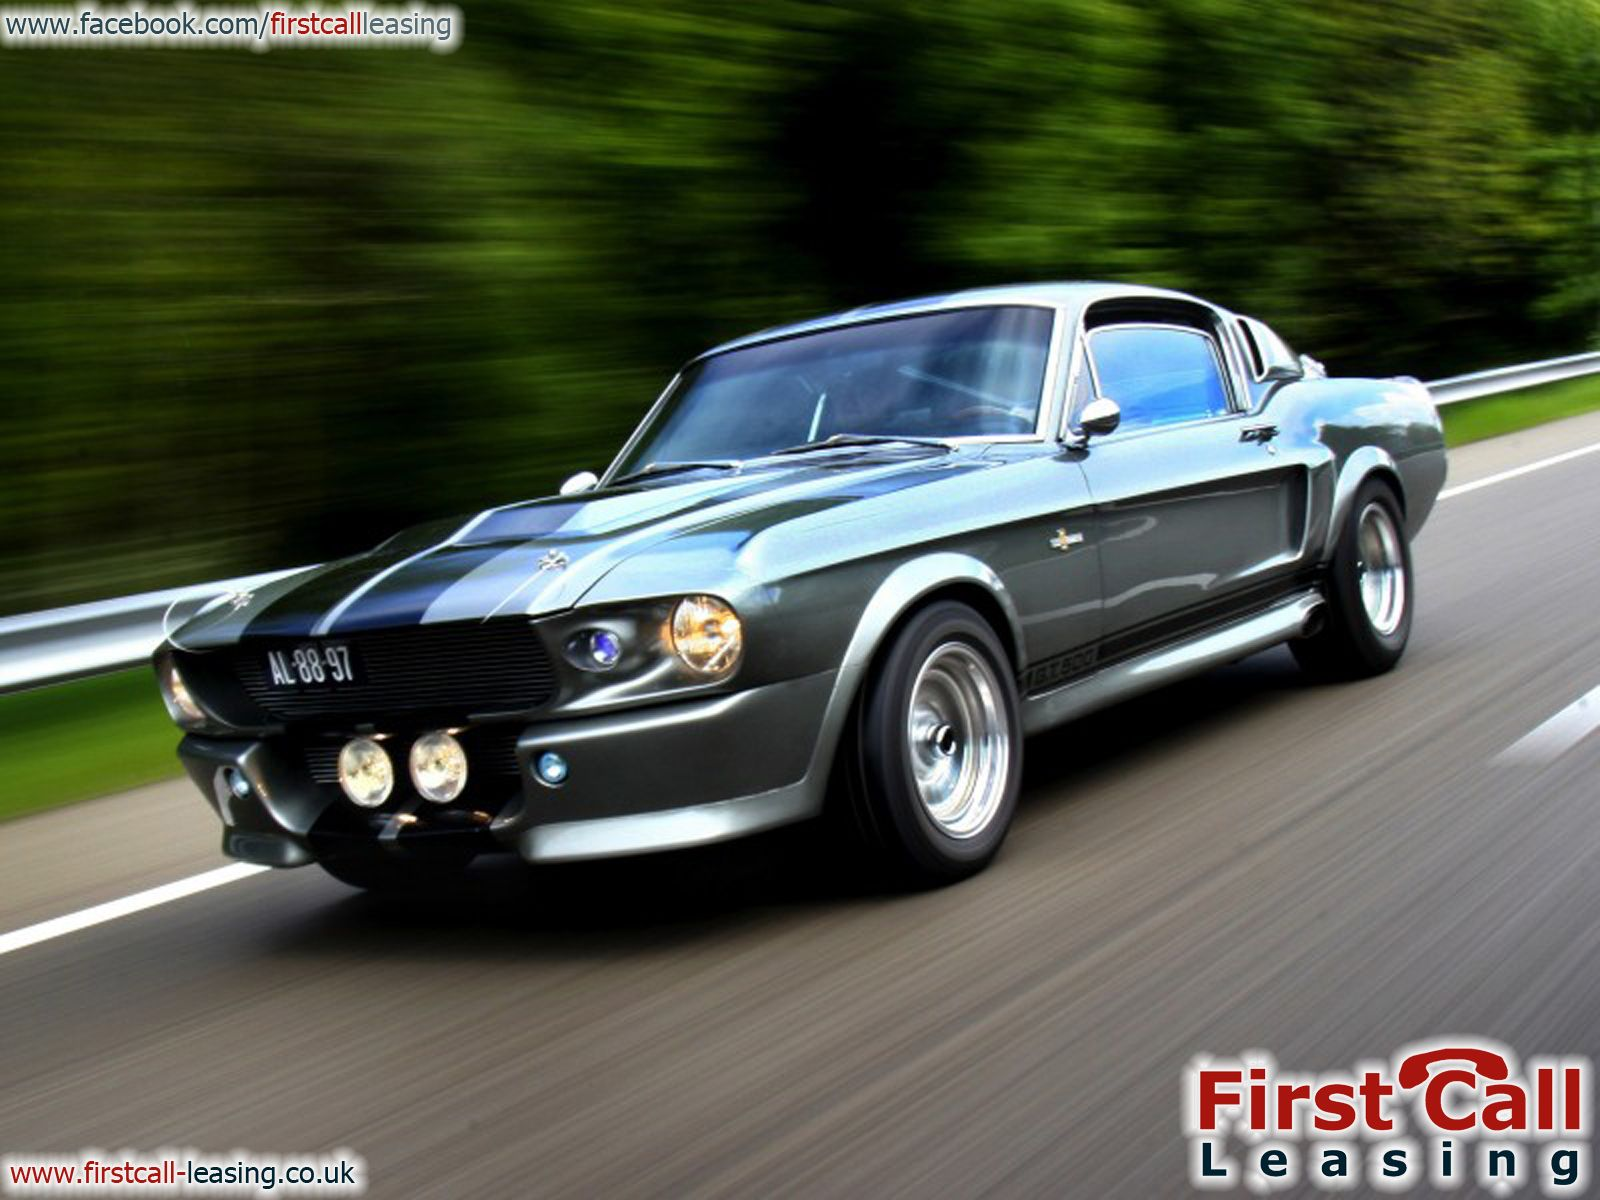 Eleanor 1964 Shelby Mustang Gt500 Mustang Shelby Ford Mustang